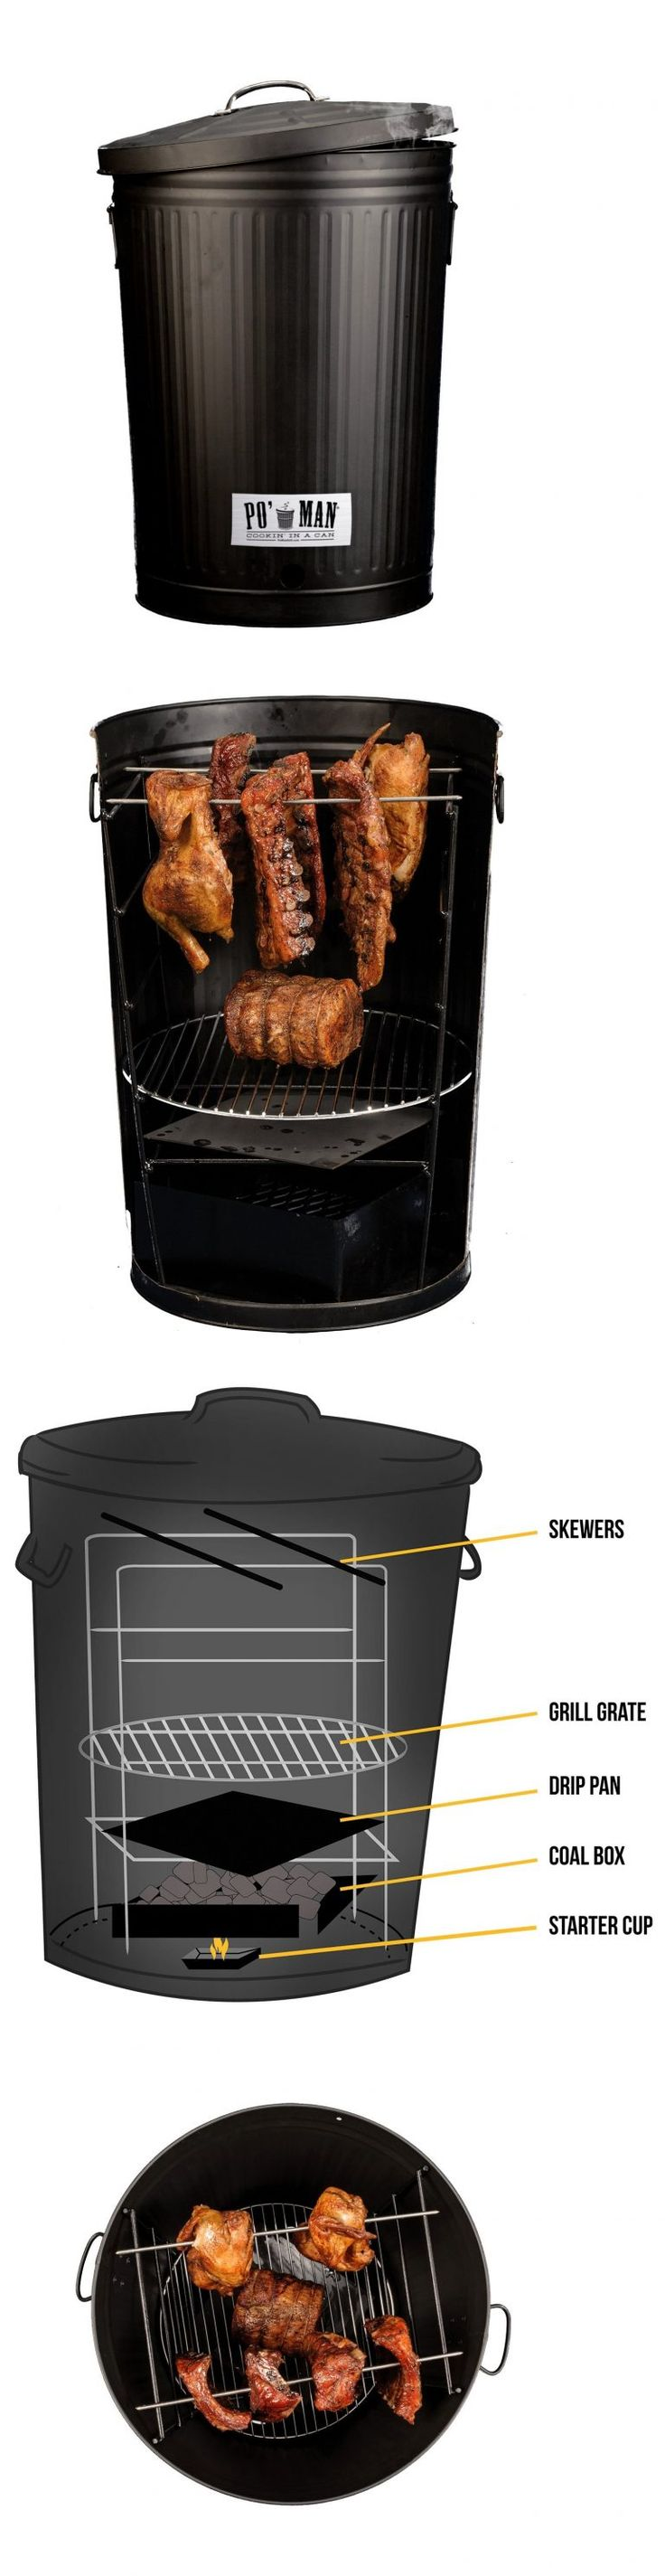 34 best u0027gear smokers ugly drum uds images on pinterest